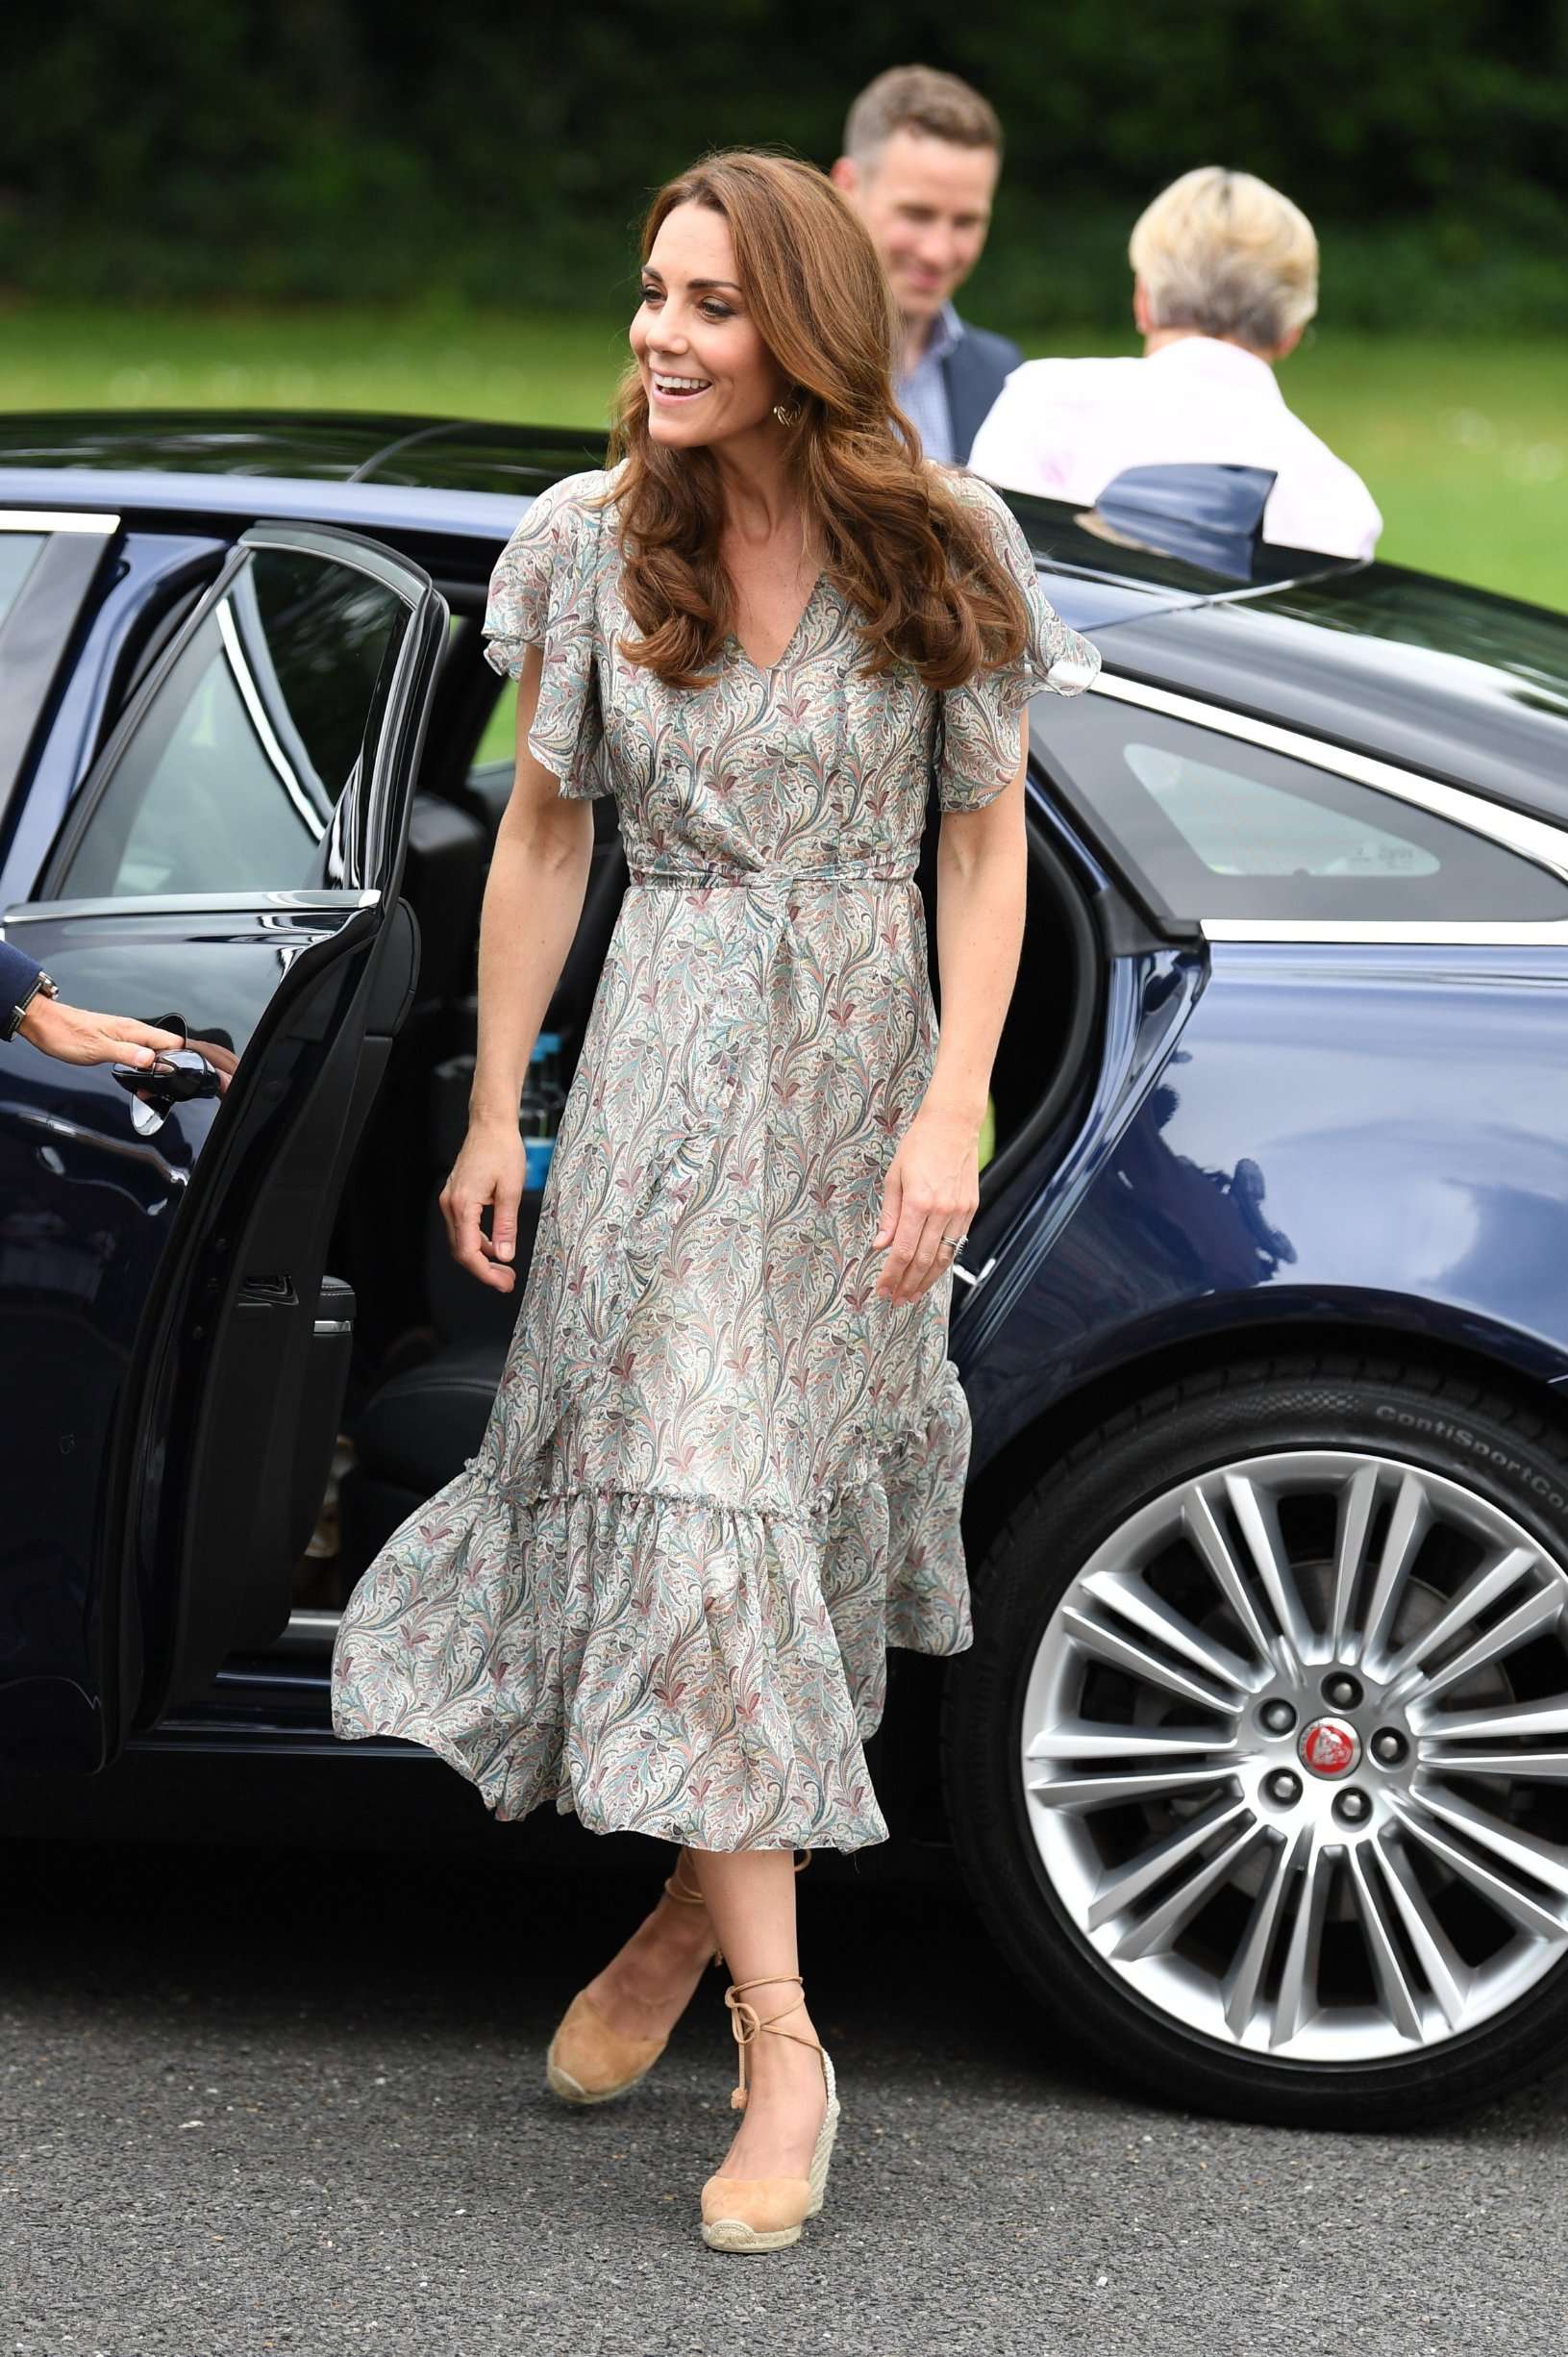 The Duchess of Cambridge joins a photography workshop with Action for Children and the Royal Photographic Society at Warren Park Children's Centre, Kingston Upon Thames, London, UK, on the 25th June 2019. 25 Jun 2019, Image: 451468289, License: Rights-managed, Restrictions: NO United Kingdom, Model Release: no, Credit line: Profimedia, Mega Agency